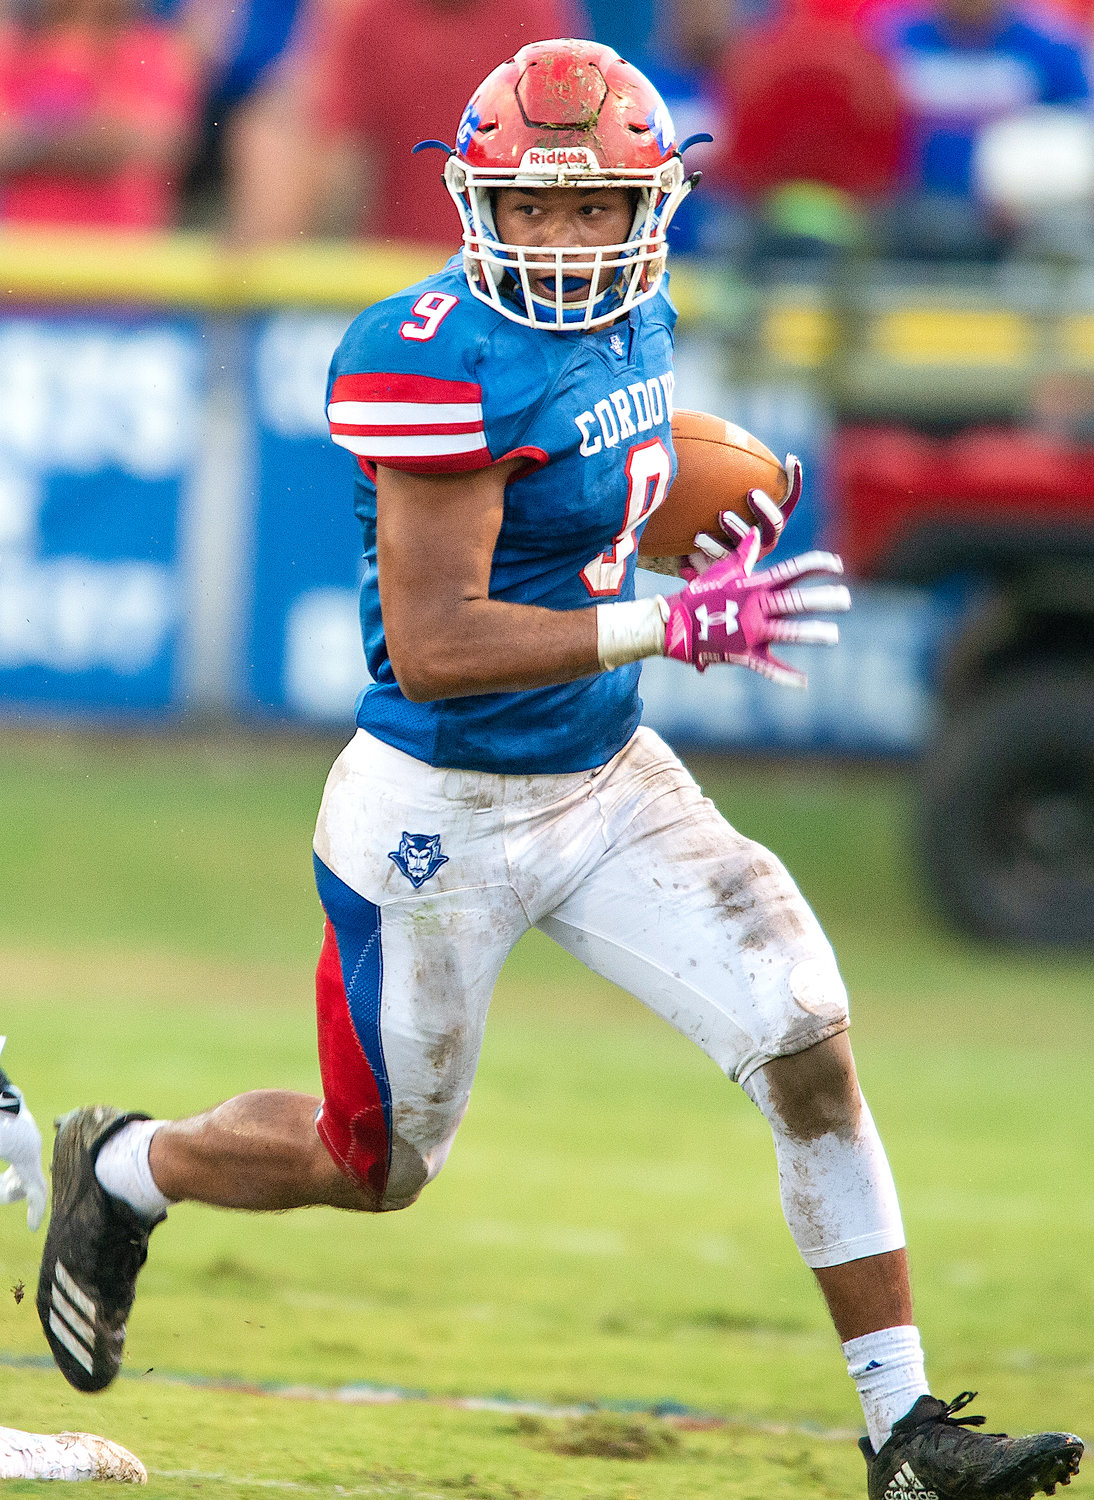 Cordova's Justin Wallace rushed for 251 yards and four touchdowns in the Blue Devils' 48-28 loss at Northside on Friday.